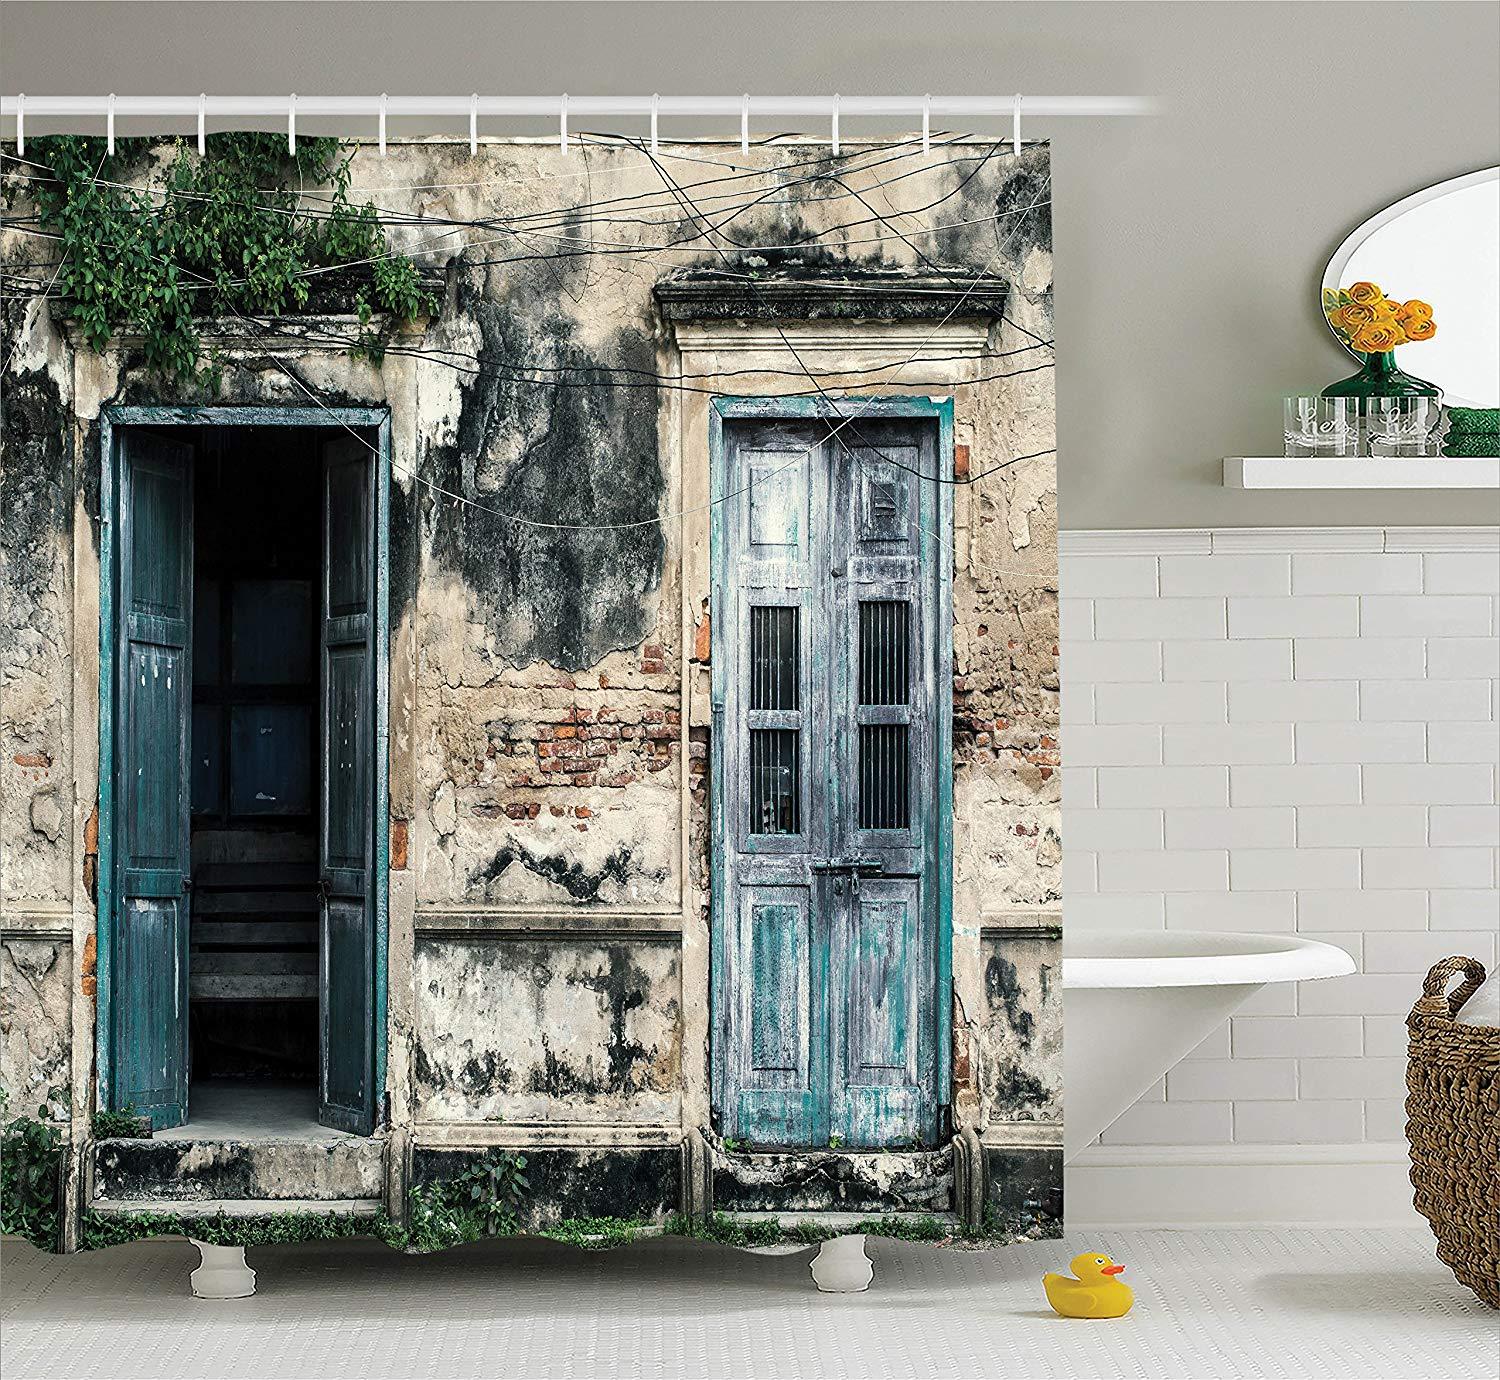 Cheap Rustic Shower Curtains Us 16 97 45 Off Aliexpress Buy Rustic Shower Curtain Doors Of An Old Rock House With French Frame Details In Countryside European Past Fabric